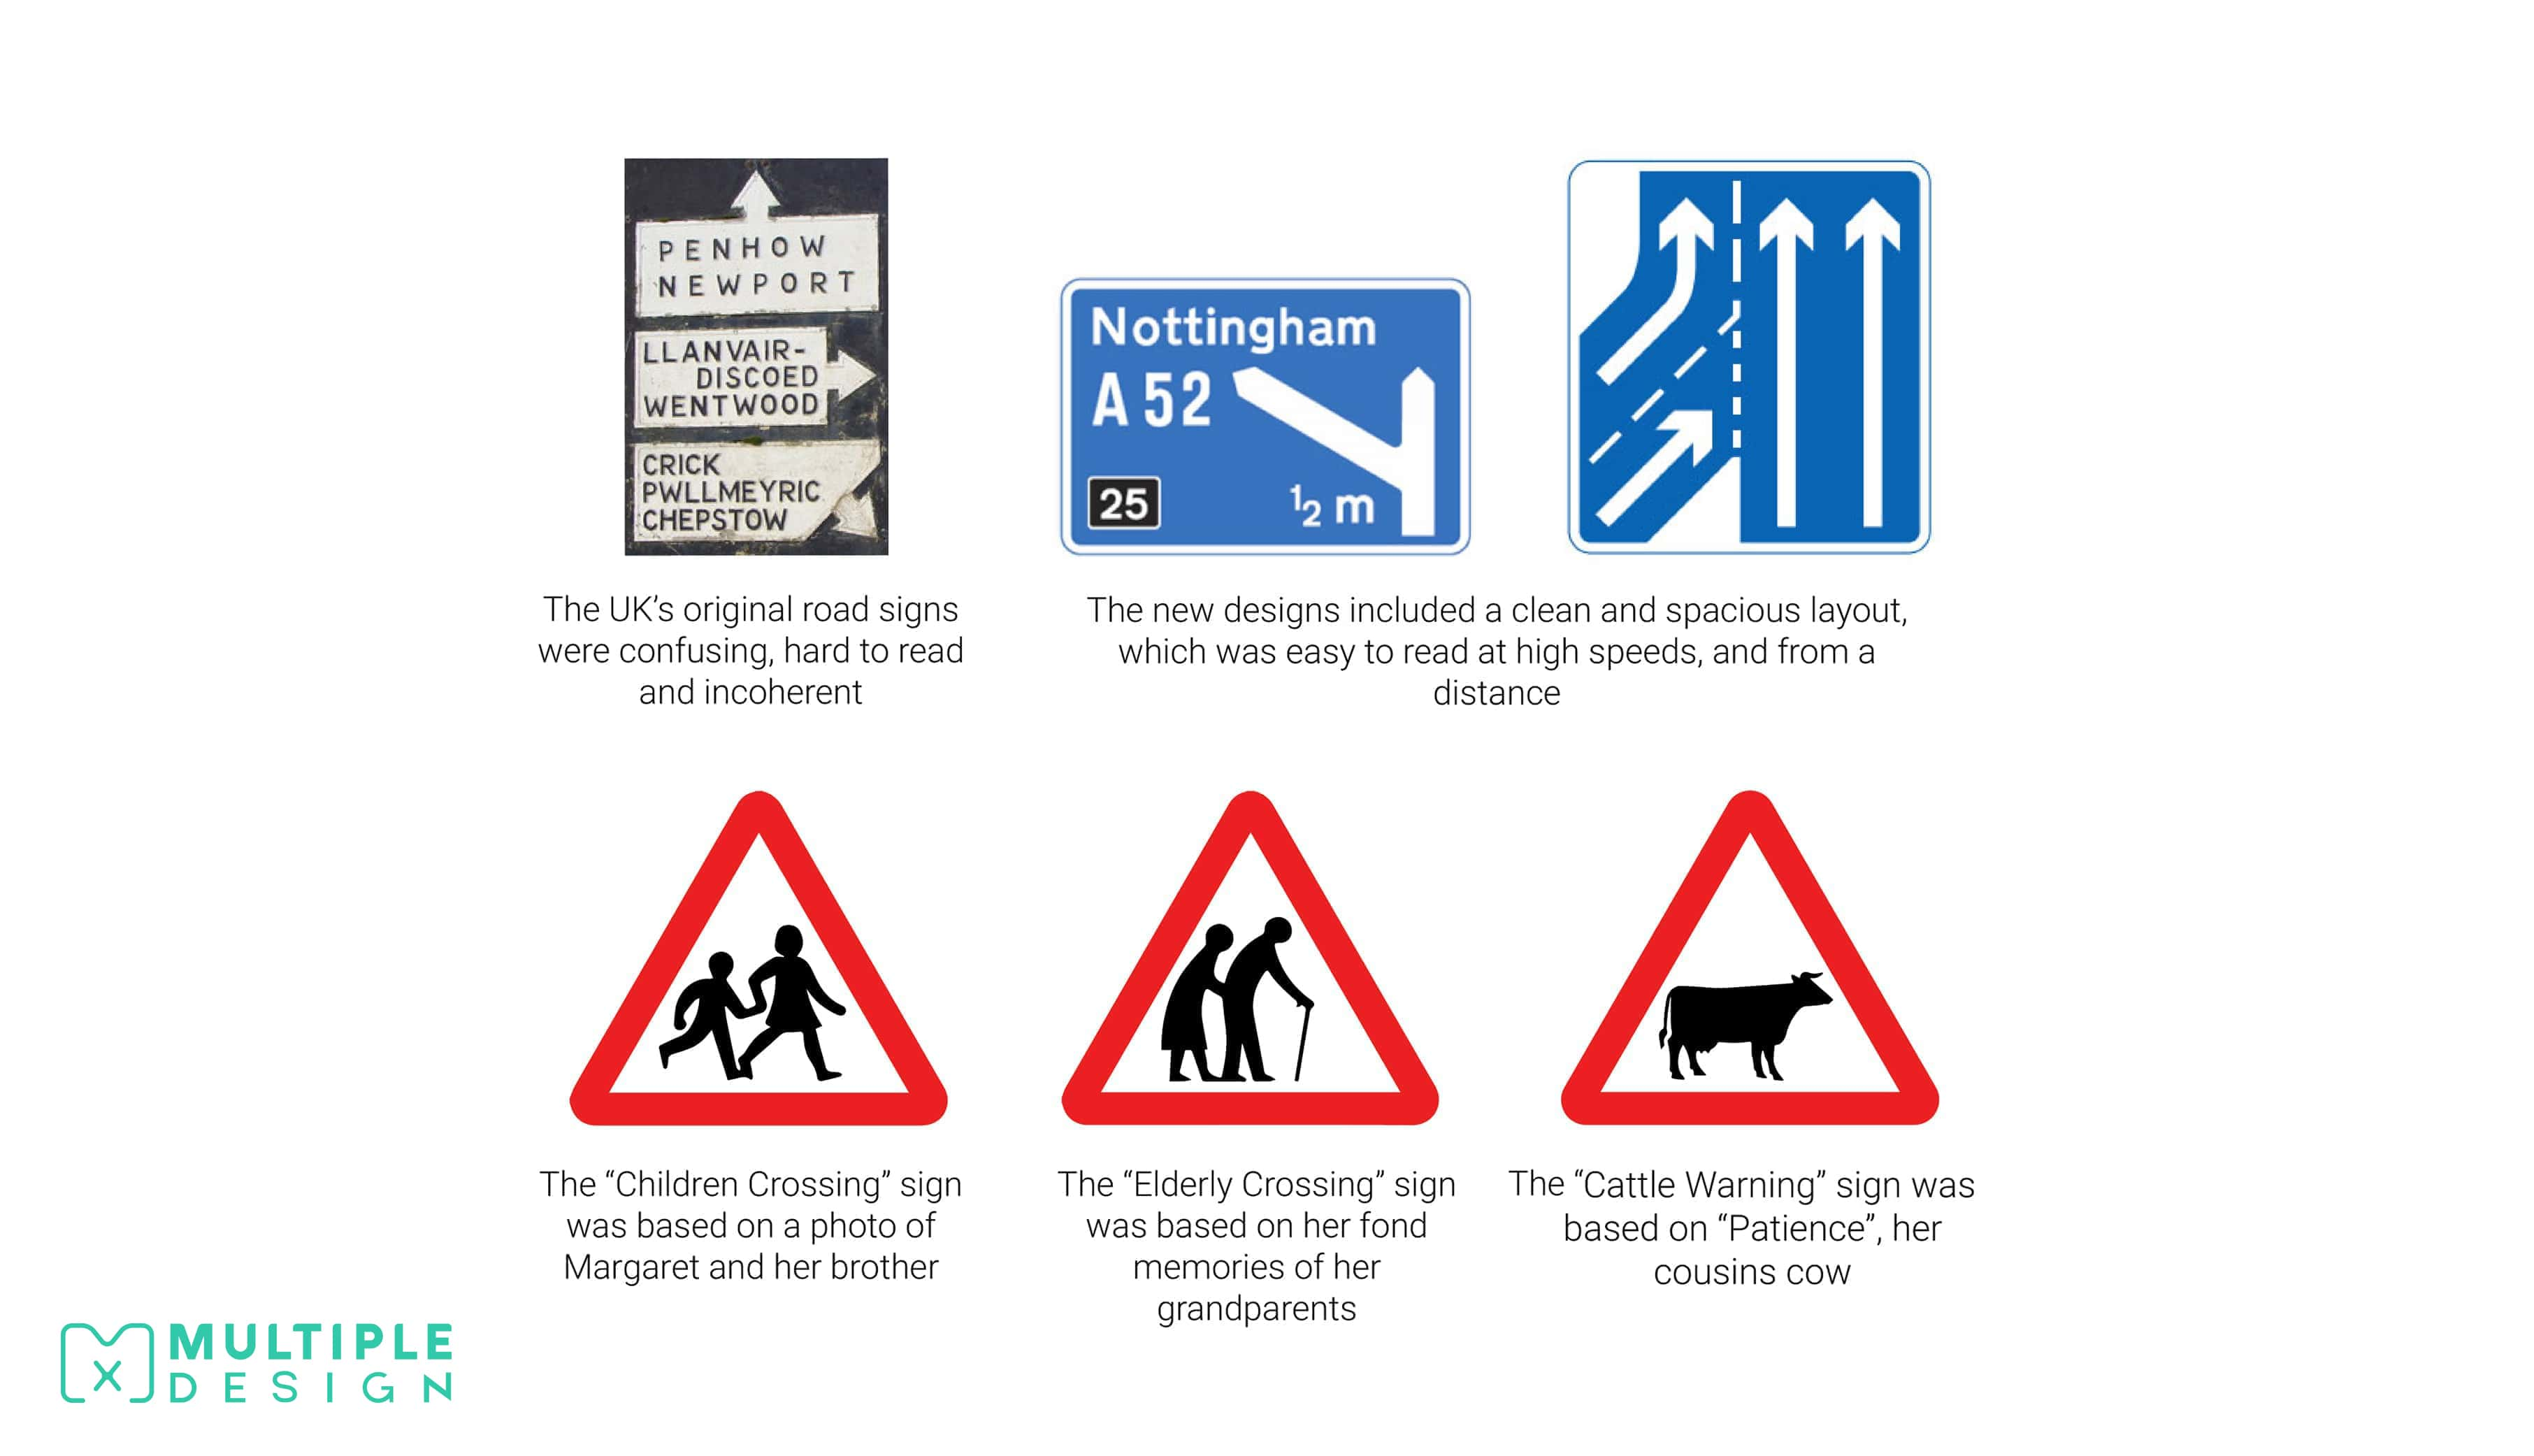 UK road sign, designed by margaret calvert